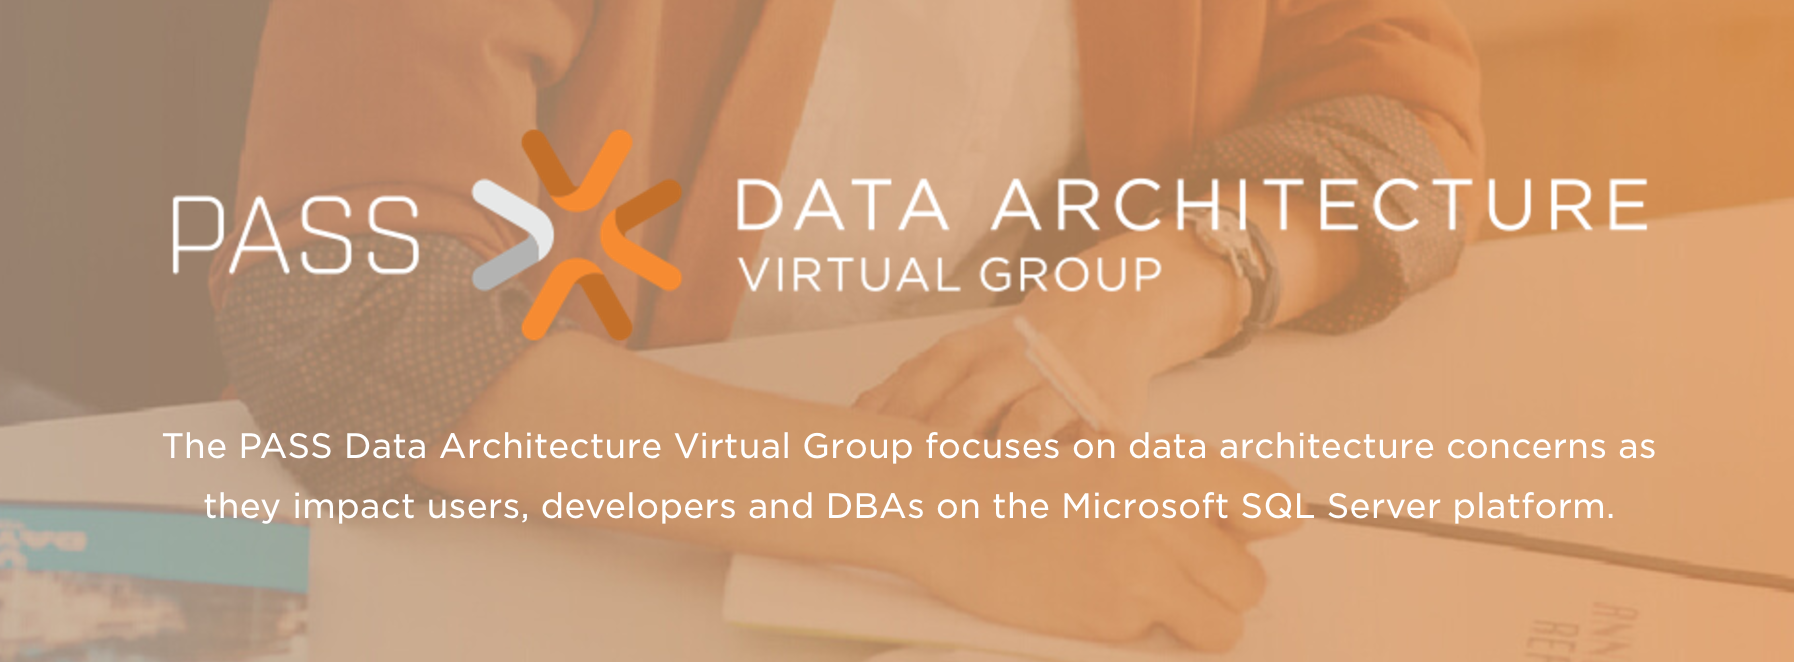 Links for my demo with the PASS Data Architecture Virtual Group